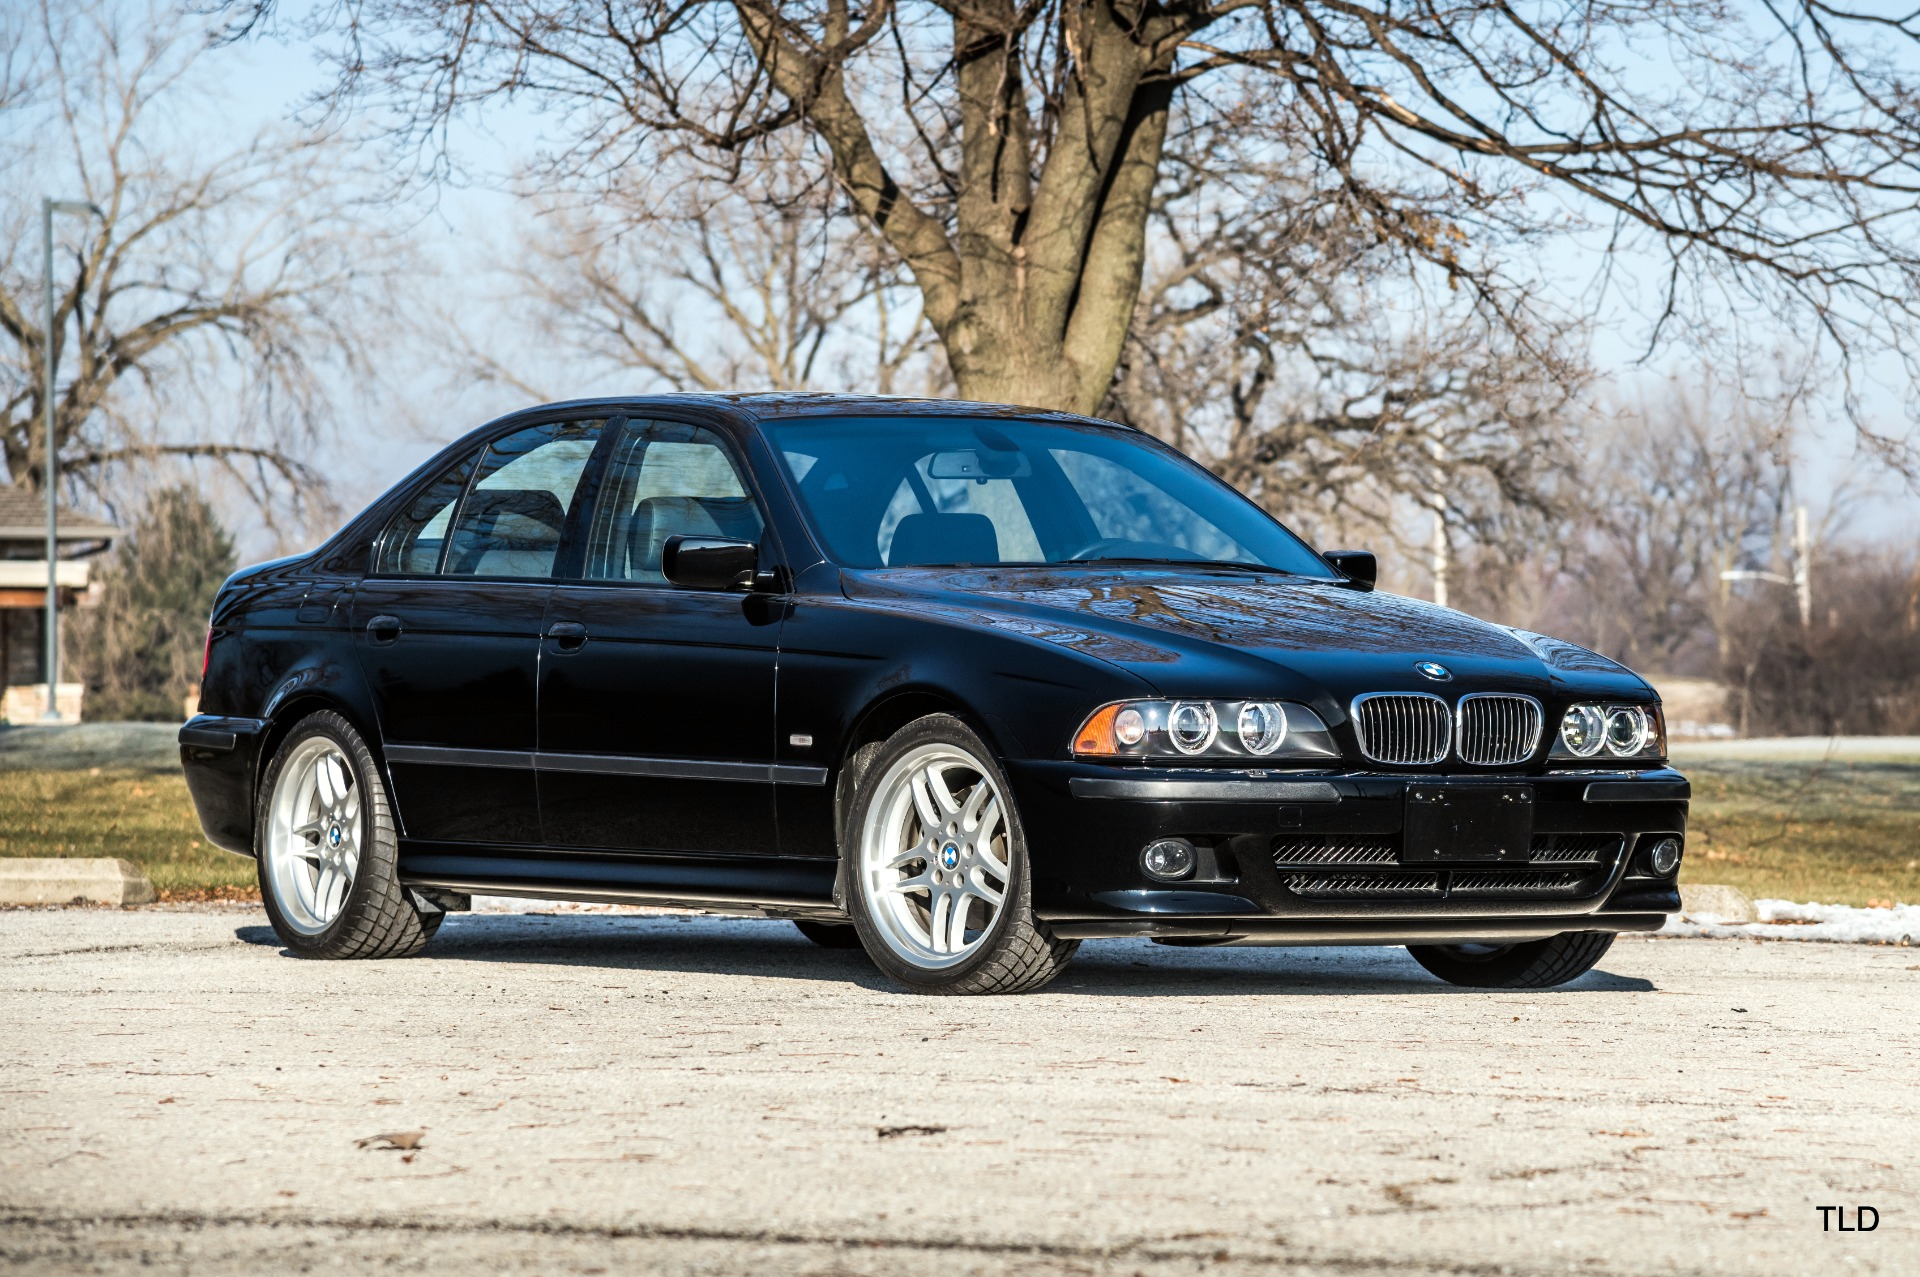 2003 BMW 5 Series 540i M-Sport 6 Speed